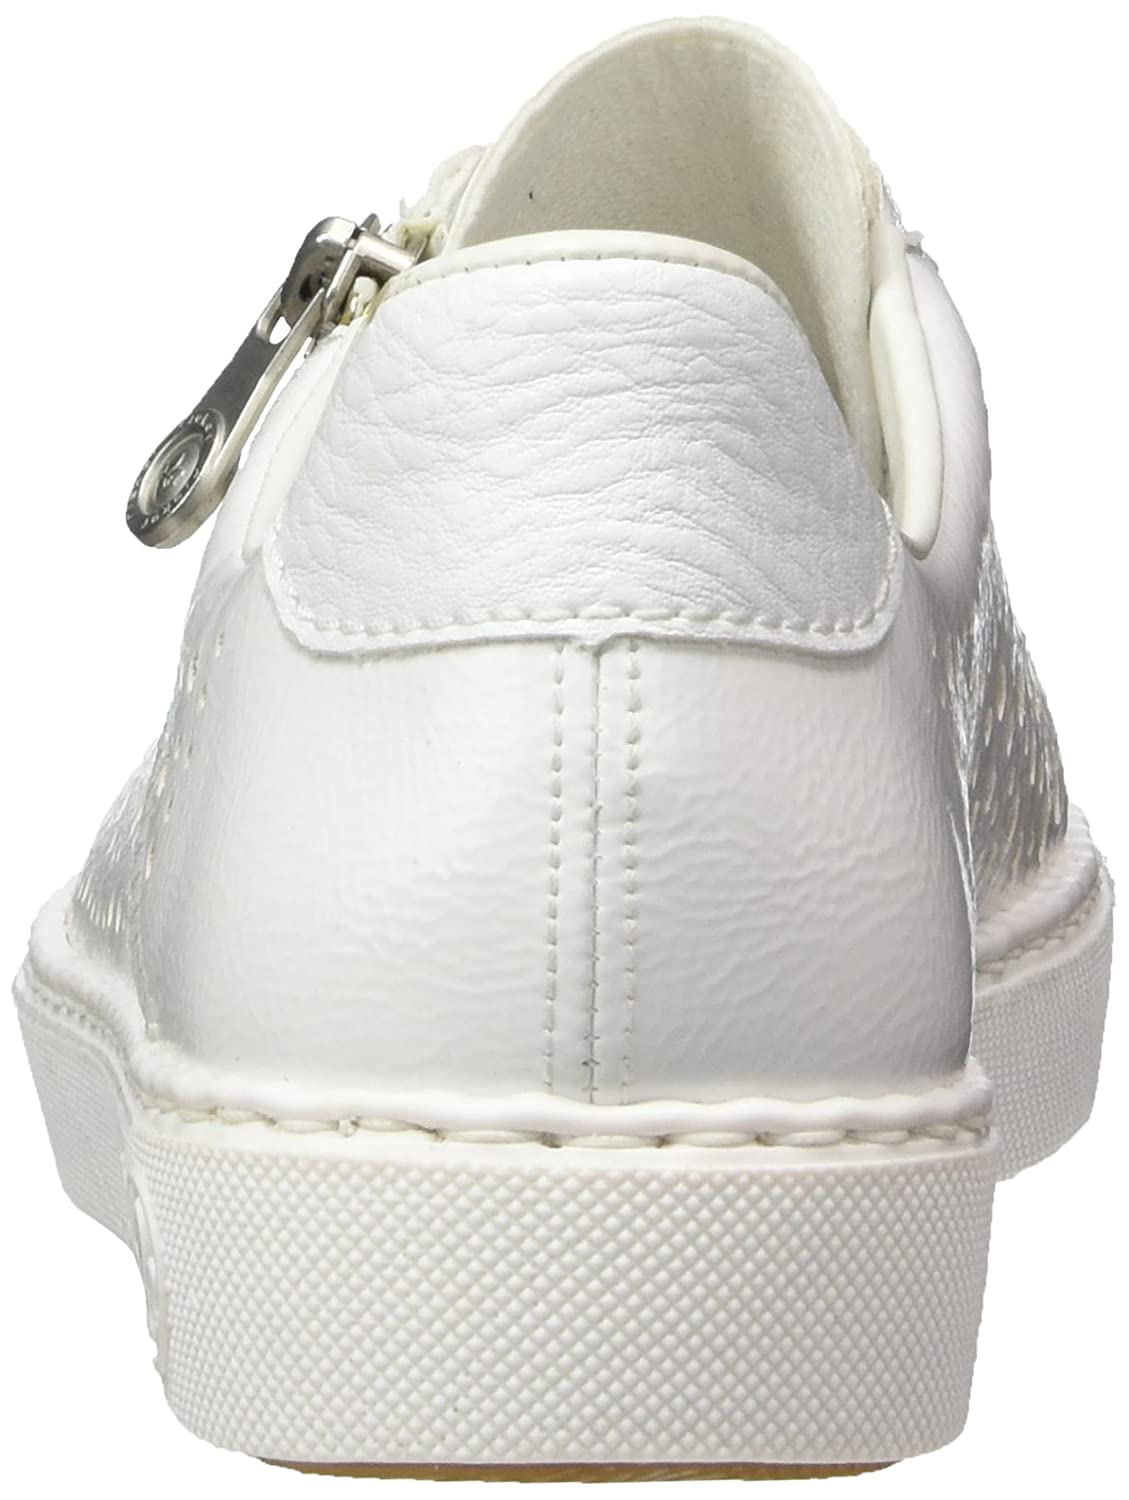 ef0b4fbe09bb Rieker Women s M7928 Trainers  Amazon.co.uk  Shoes   Bags